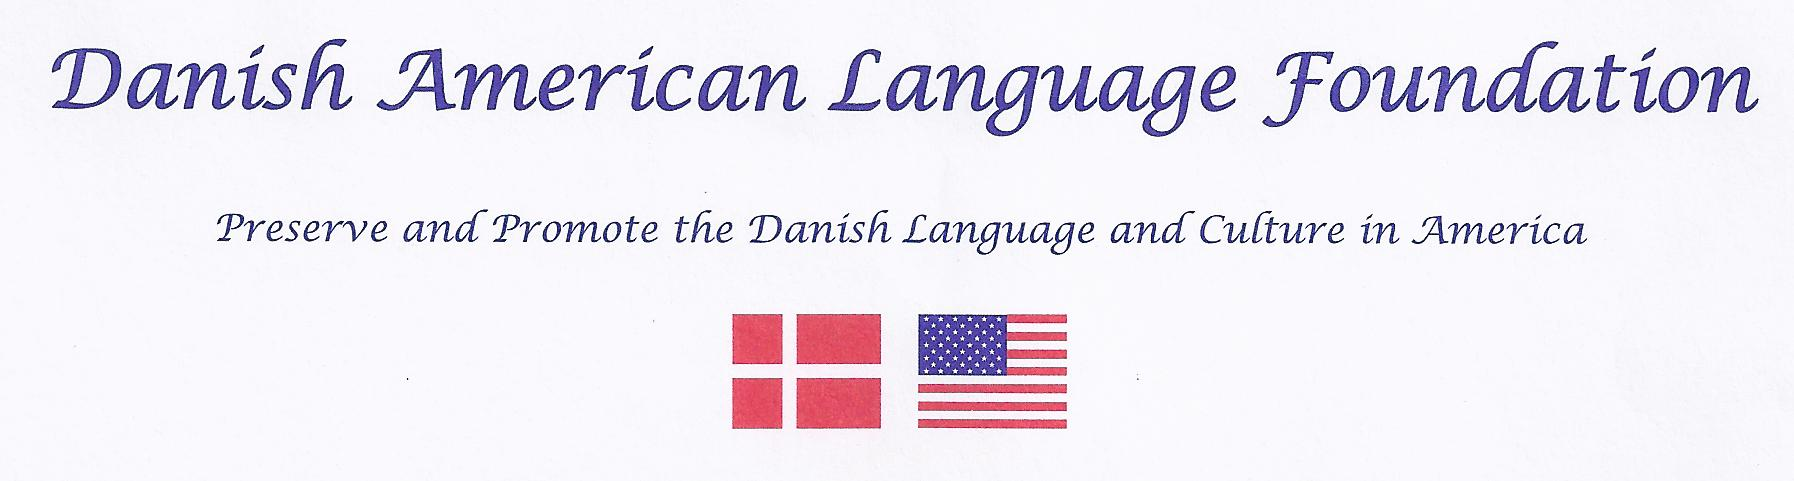 The Danish American Language Foundation